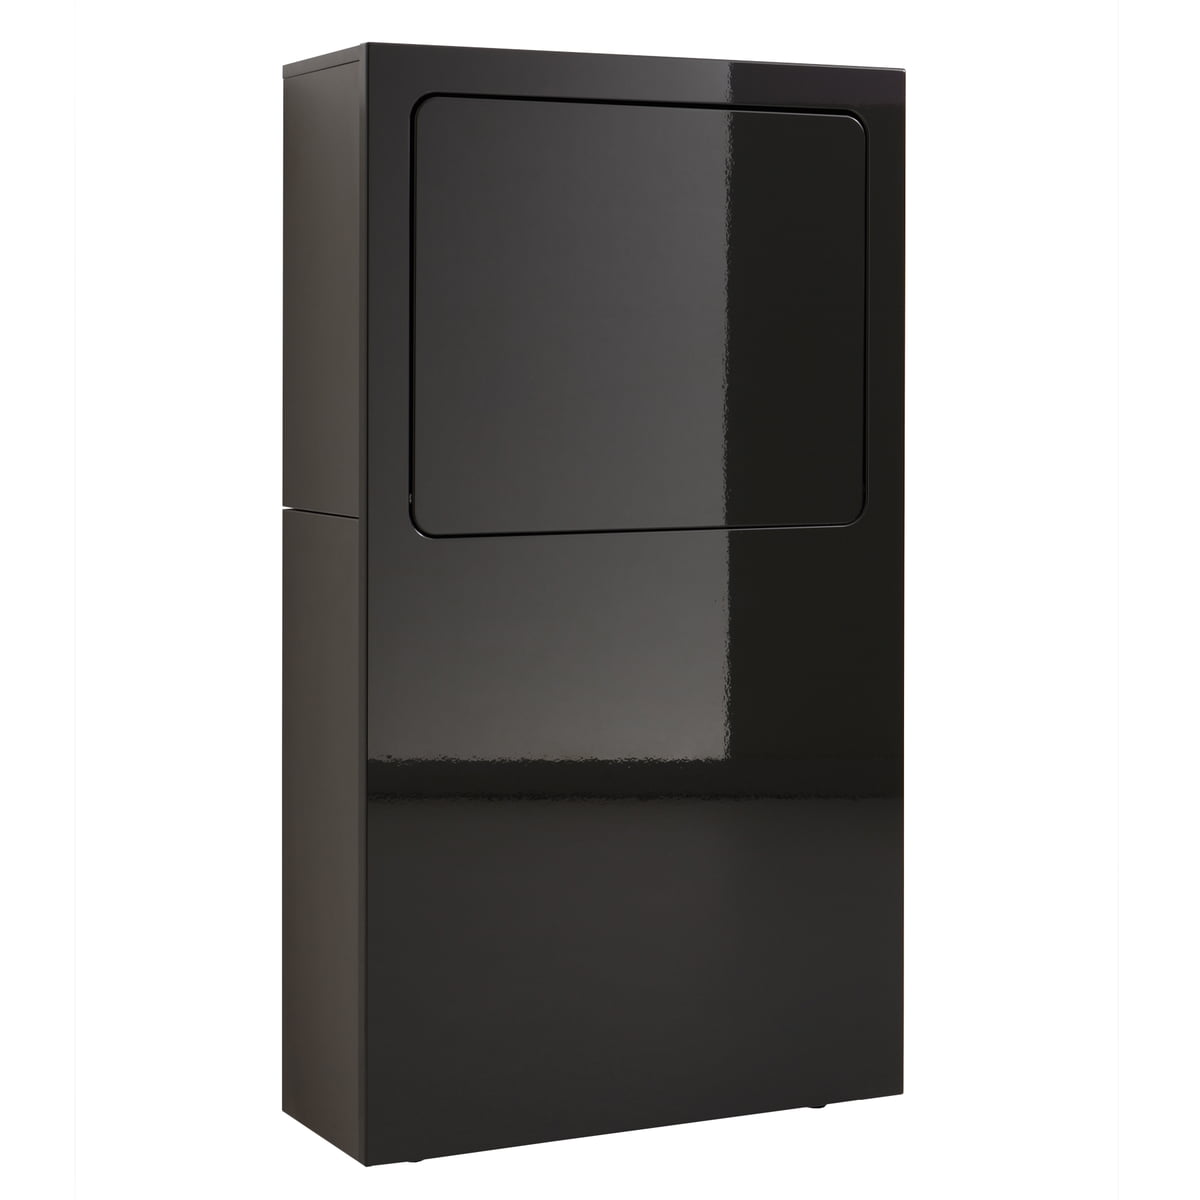 smaider sekret r von urban favourites im shop. Black Bedroom Furniture Sets. Home Design Ideas